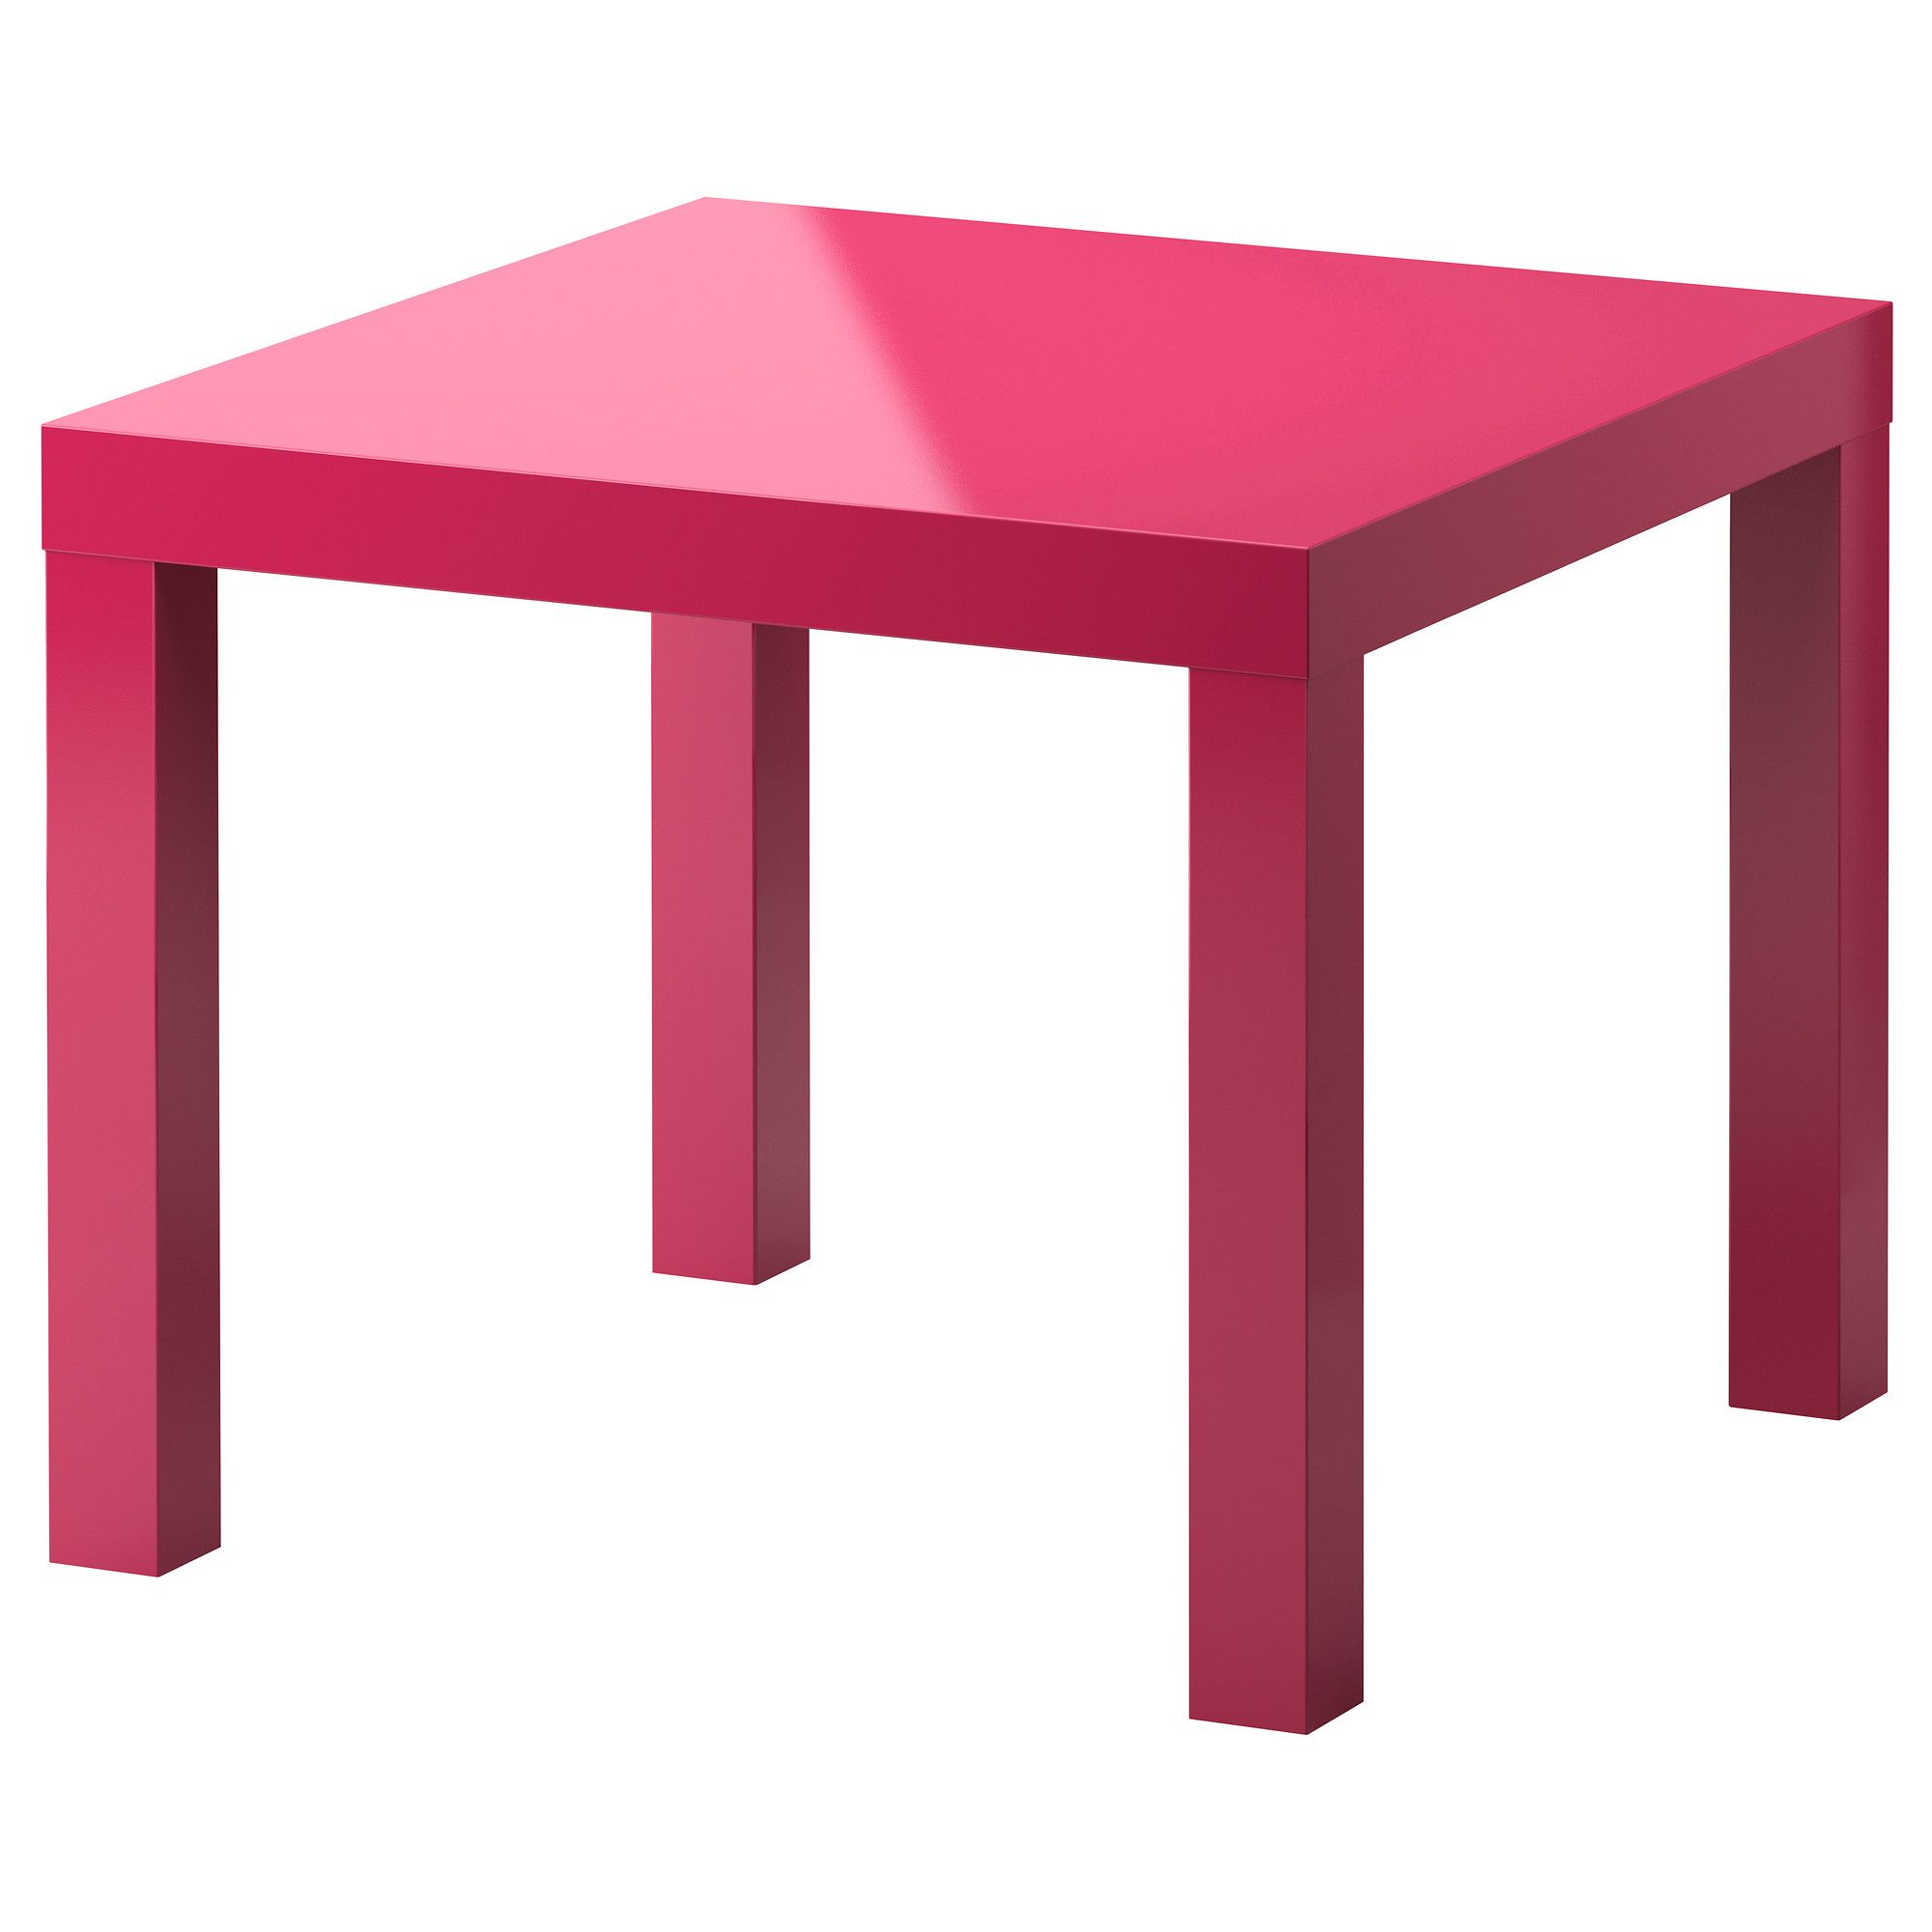 Lack Tafel Ikea Lack Side Table High Gloss Pink 21 5 8x21 5 8 Quot Ikea